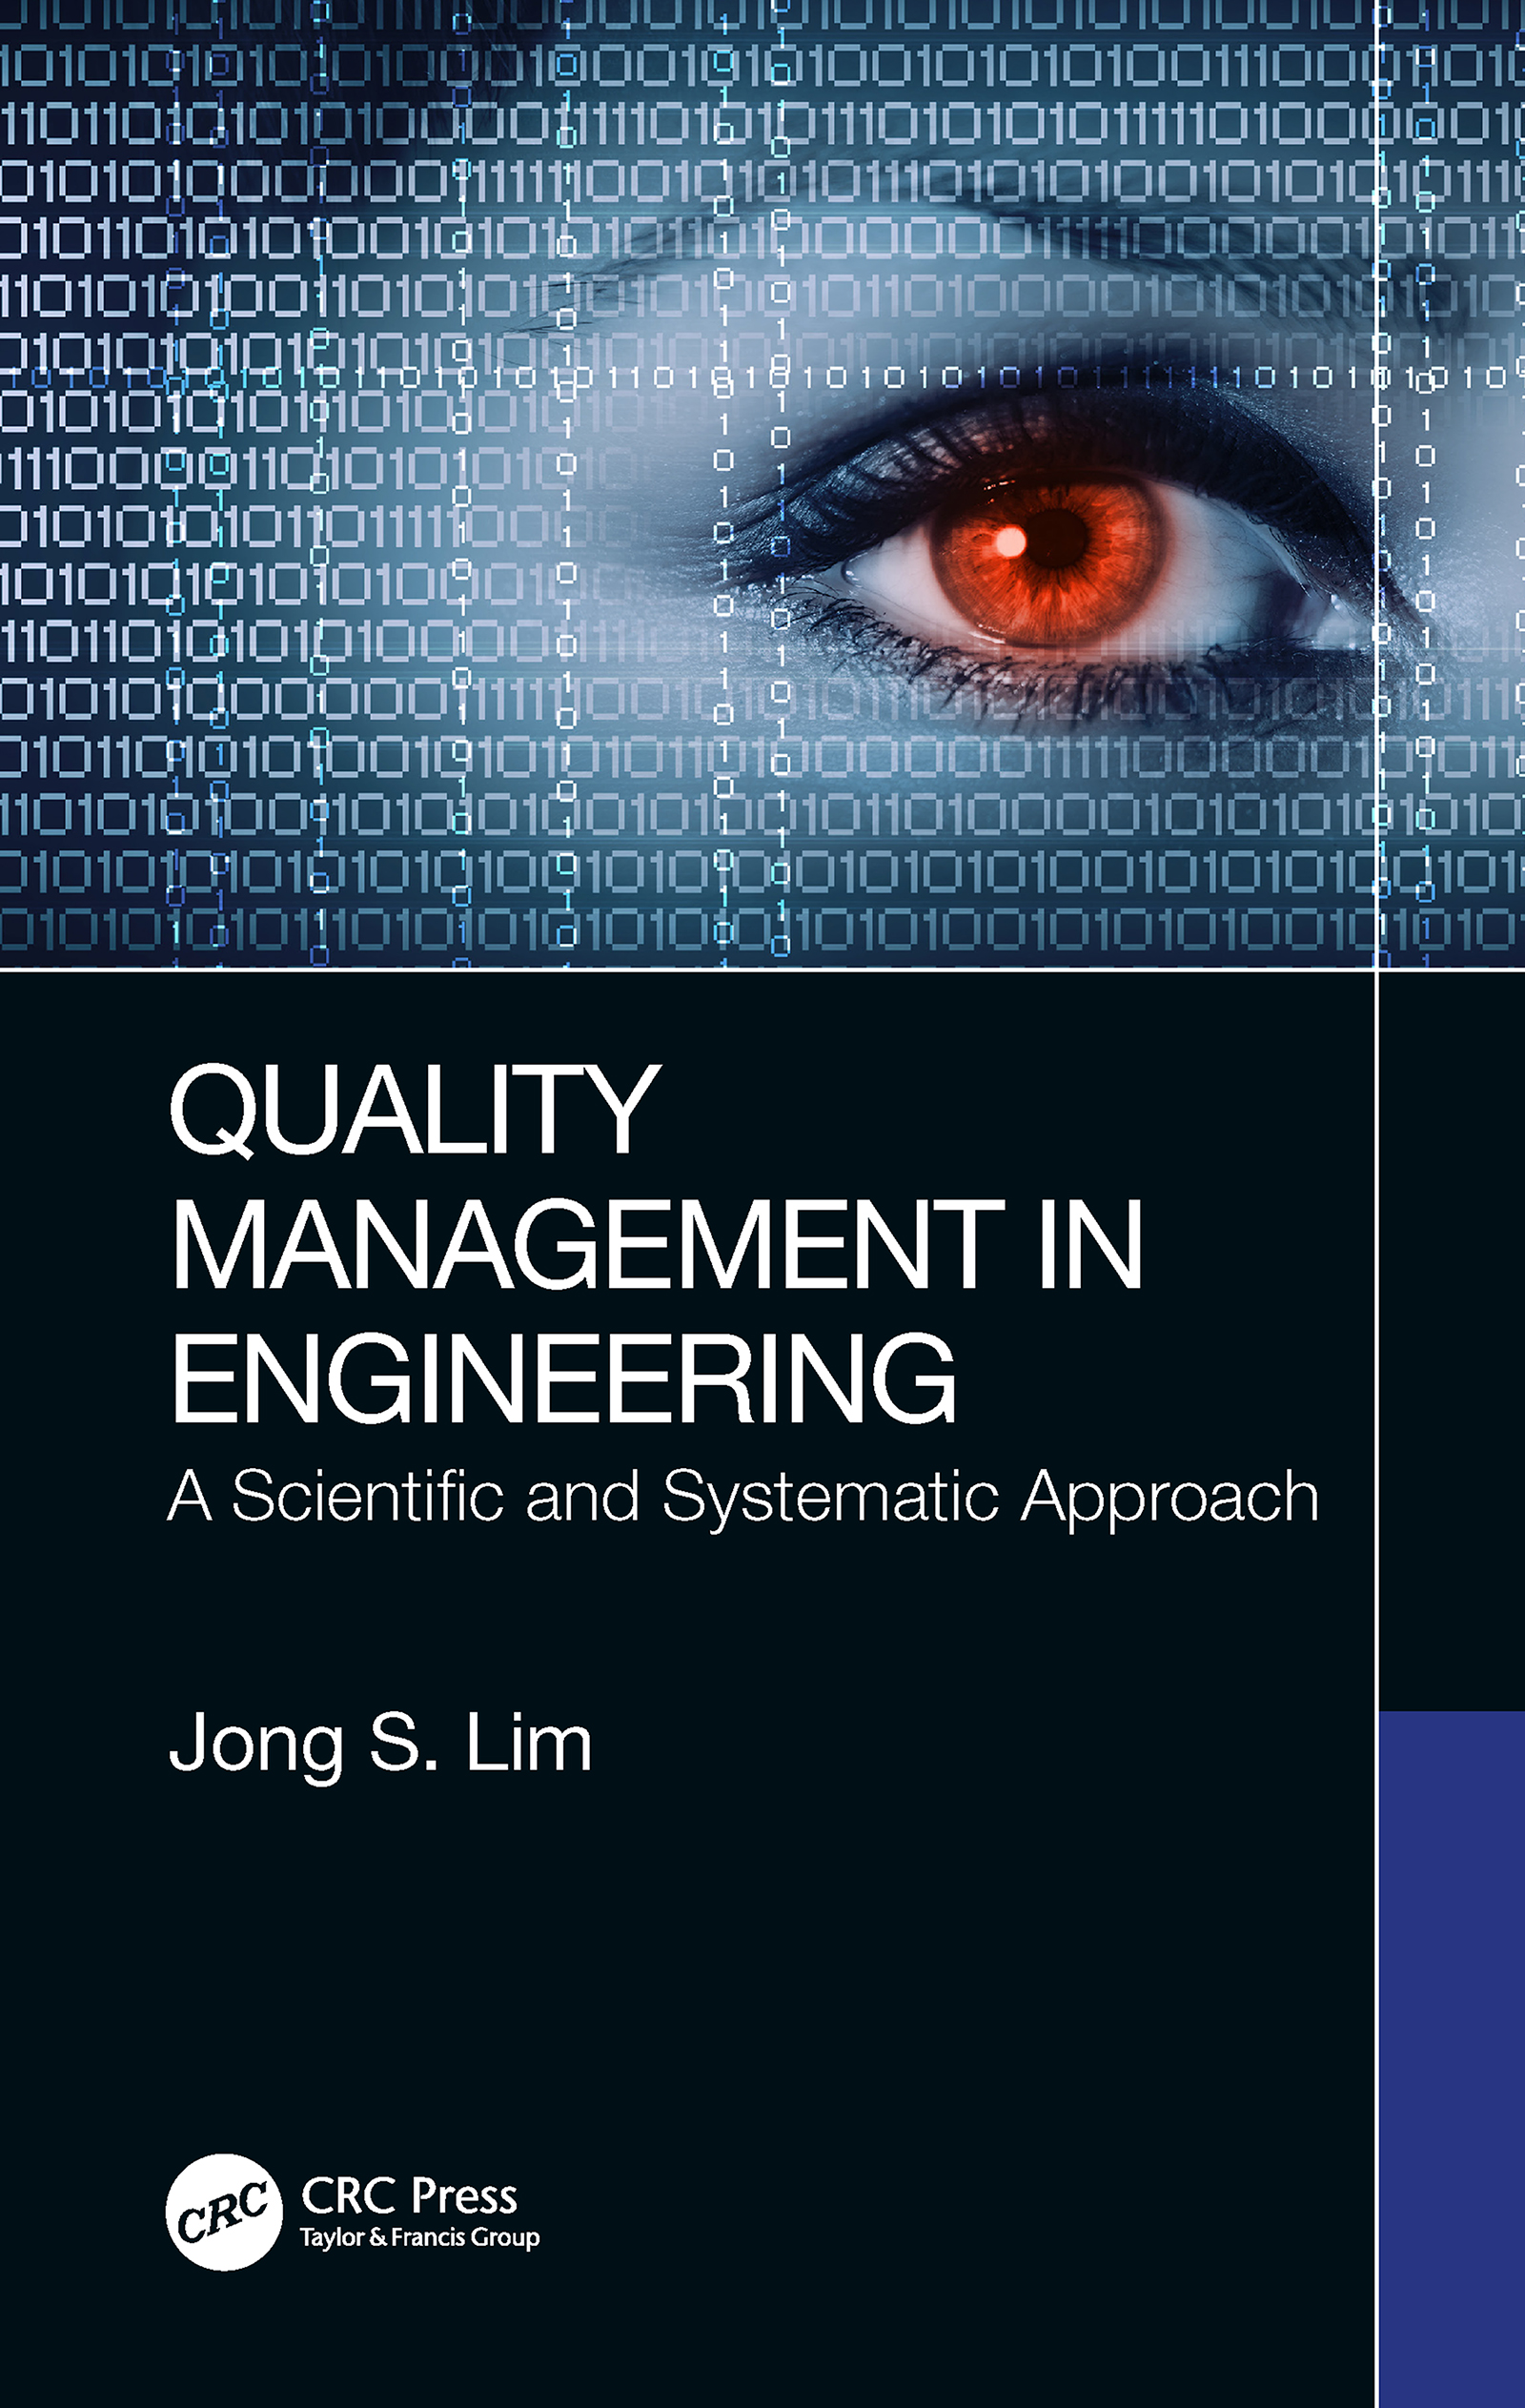 Quality Management in Engineering: A Scientific and Systematic Approach book cover